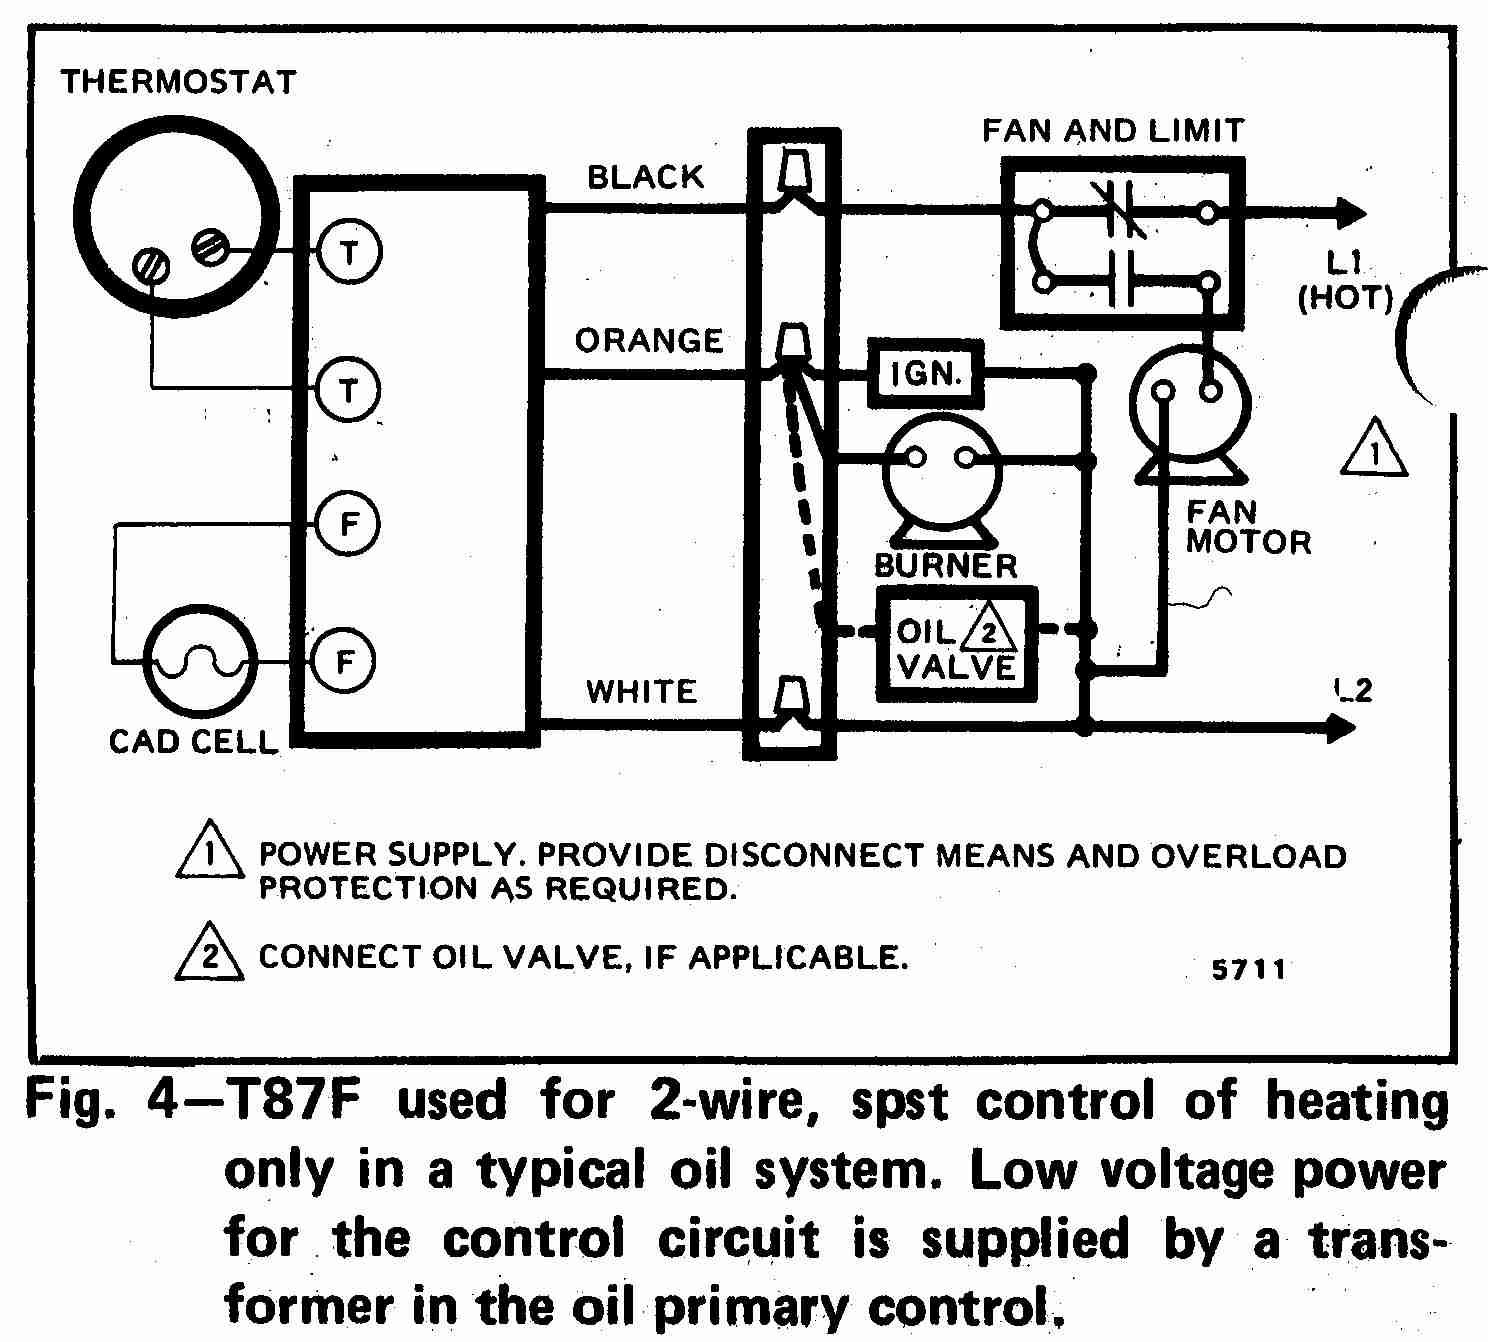 honeywell thermostat wiring diagram 2wire system room thermostat wiring diagrams for hvac systems